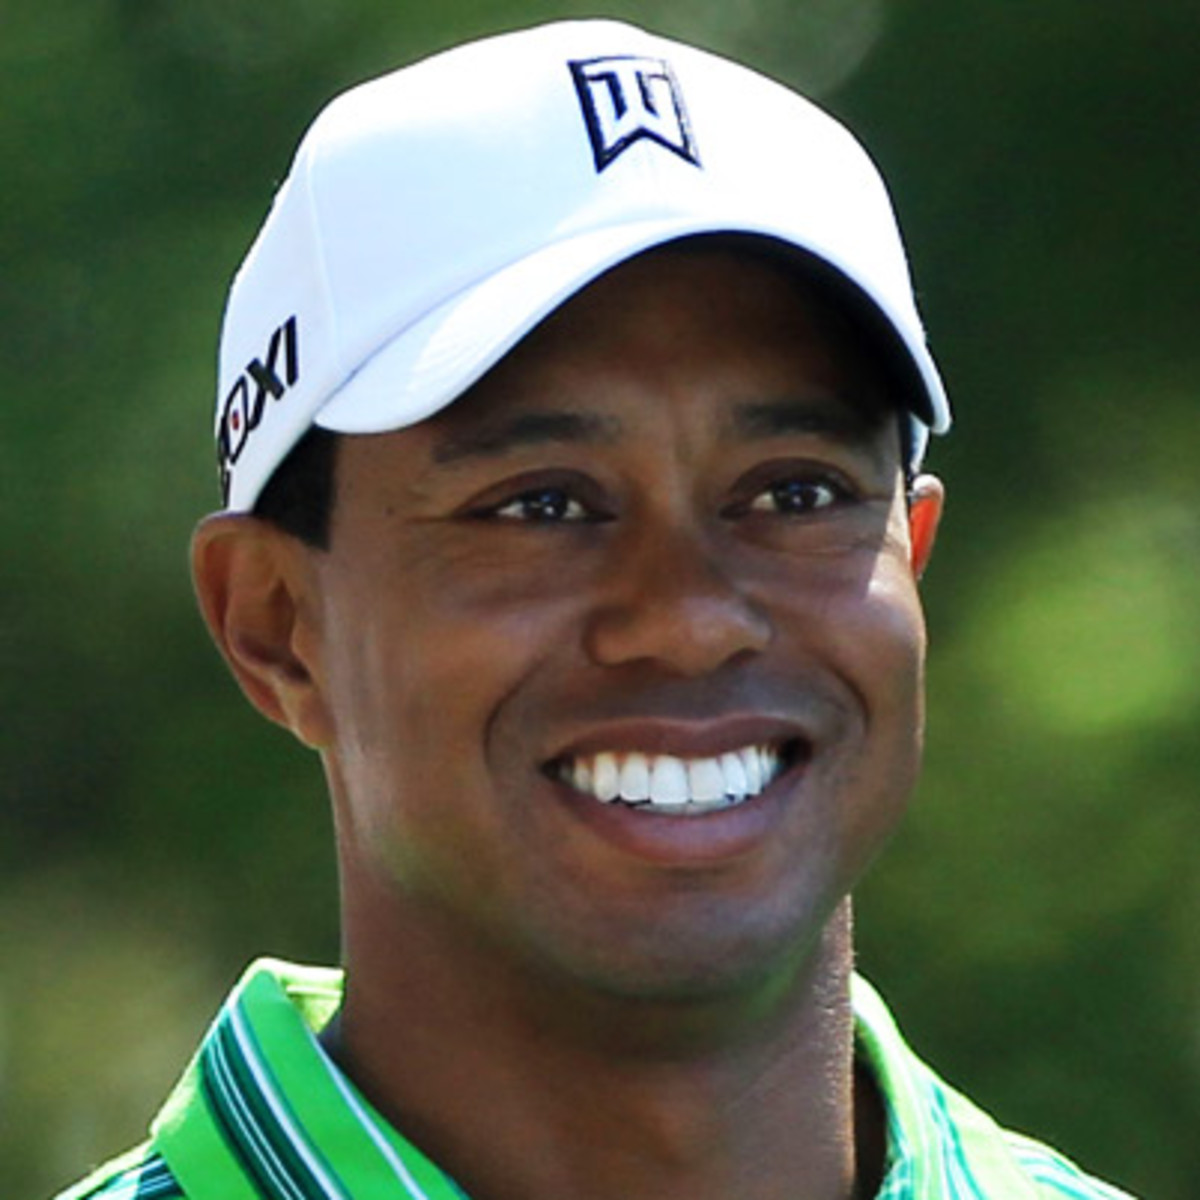 Tiger Woods Biography 739798d1269f